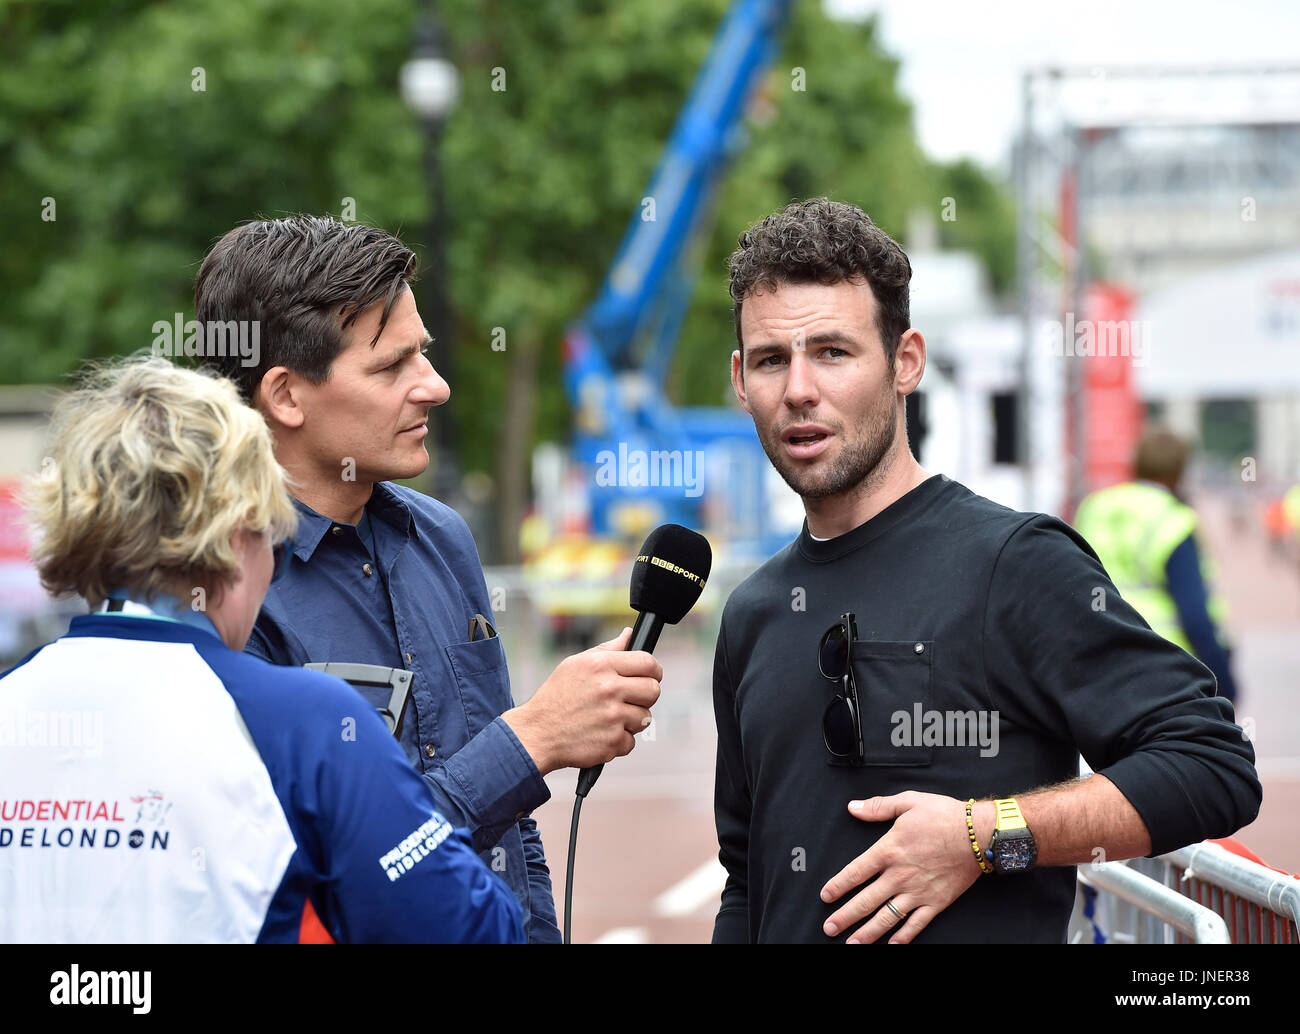 London, UK. 30th July, 2017. Mark Cavendish gave interview to media at Prudential RideLondon Classic on Sunday, July 30, 2017, LONDON ENGLAND: Photo : Taka G Wu Credit: Taka Wu/Alamy Live News - Stock Image